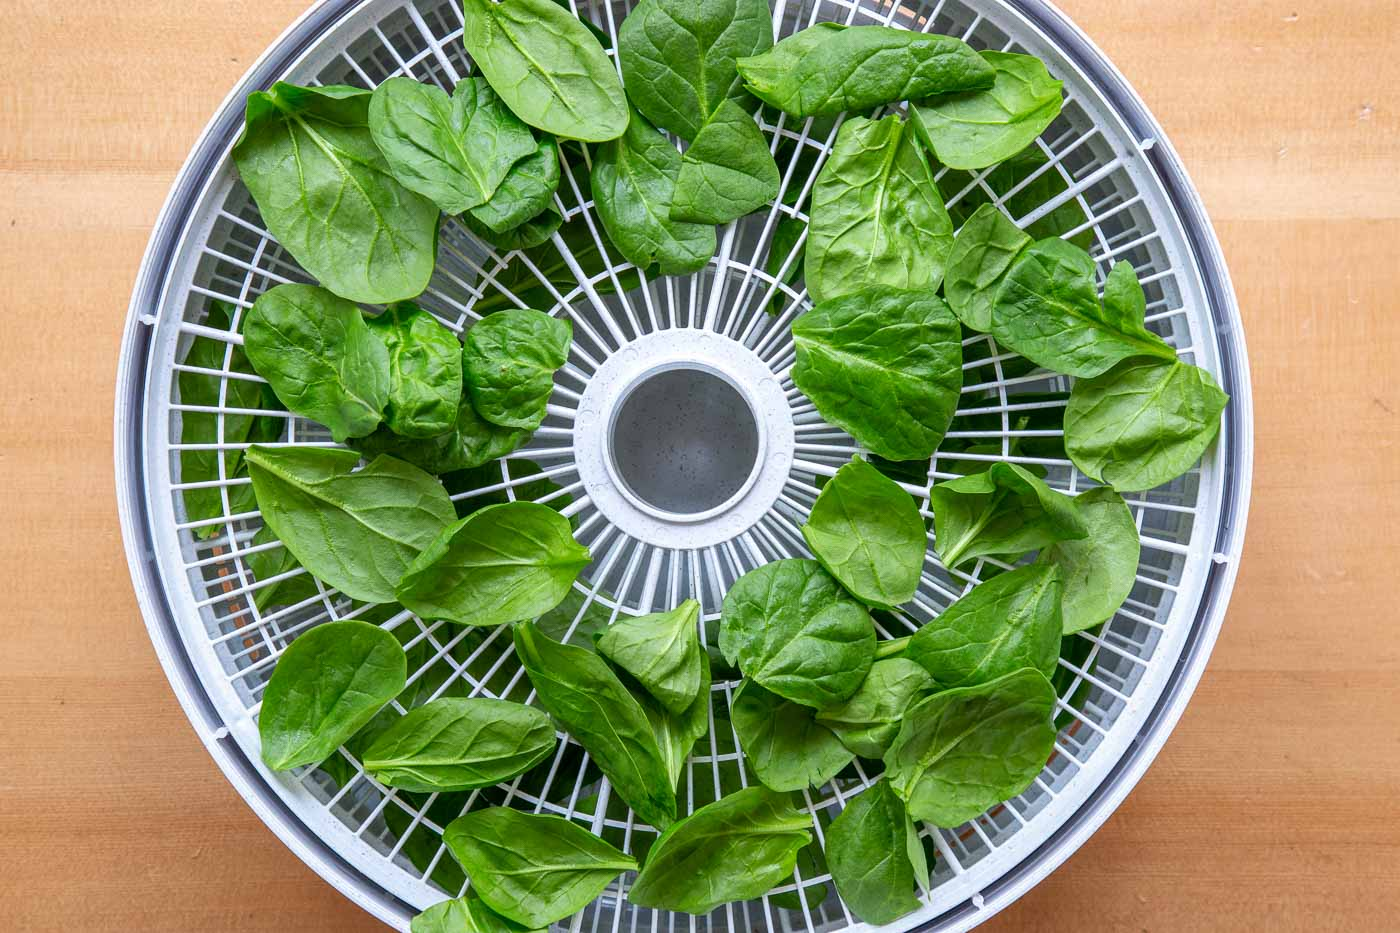 Baby spinach on a dehydrator tray